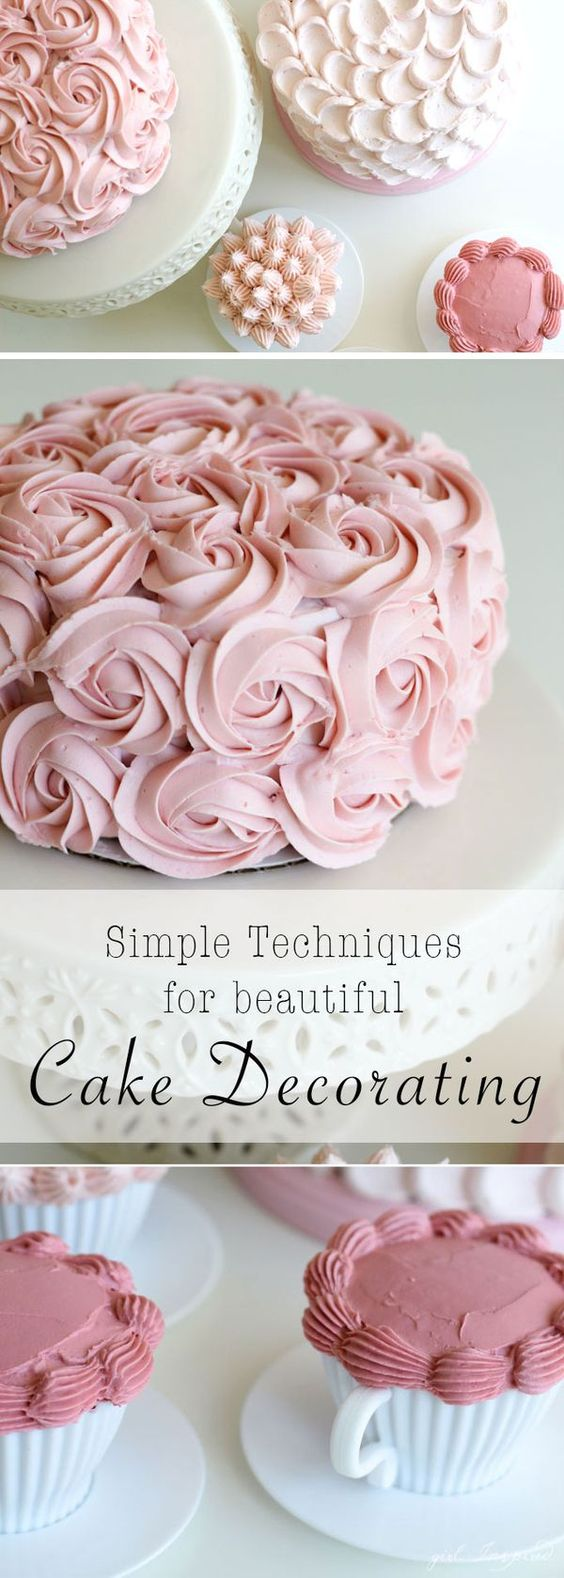 Learn these simple techniques for cake decorating SIMPLE AND STUNNING CAKE DECORATING TECHNIQUES